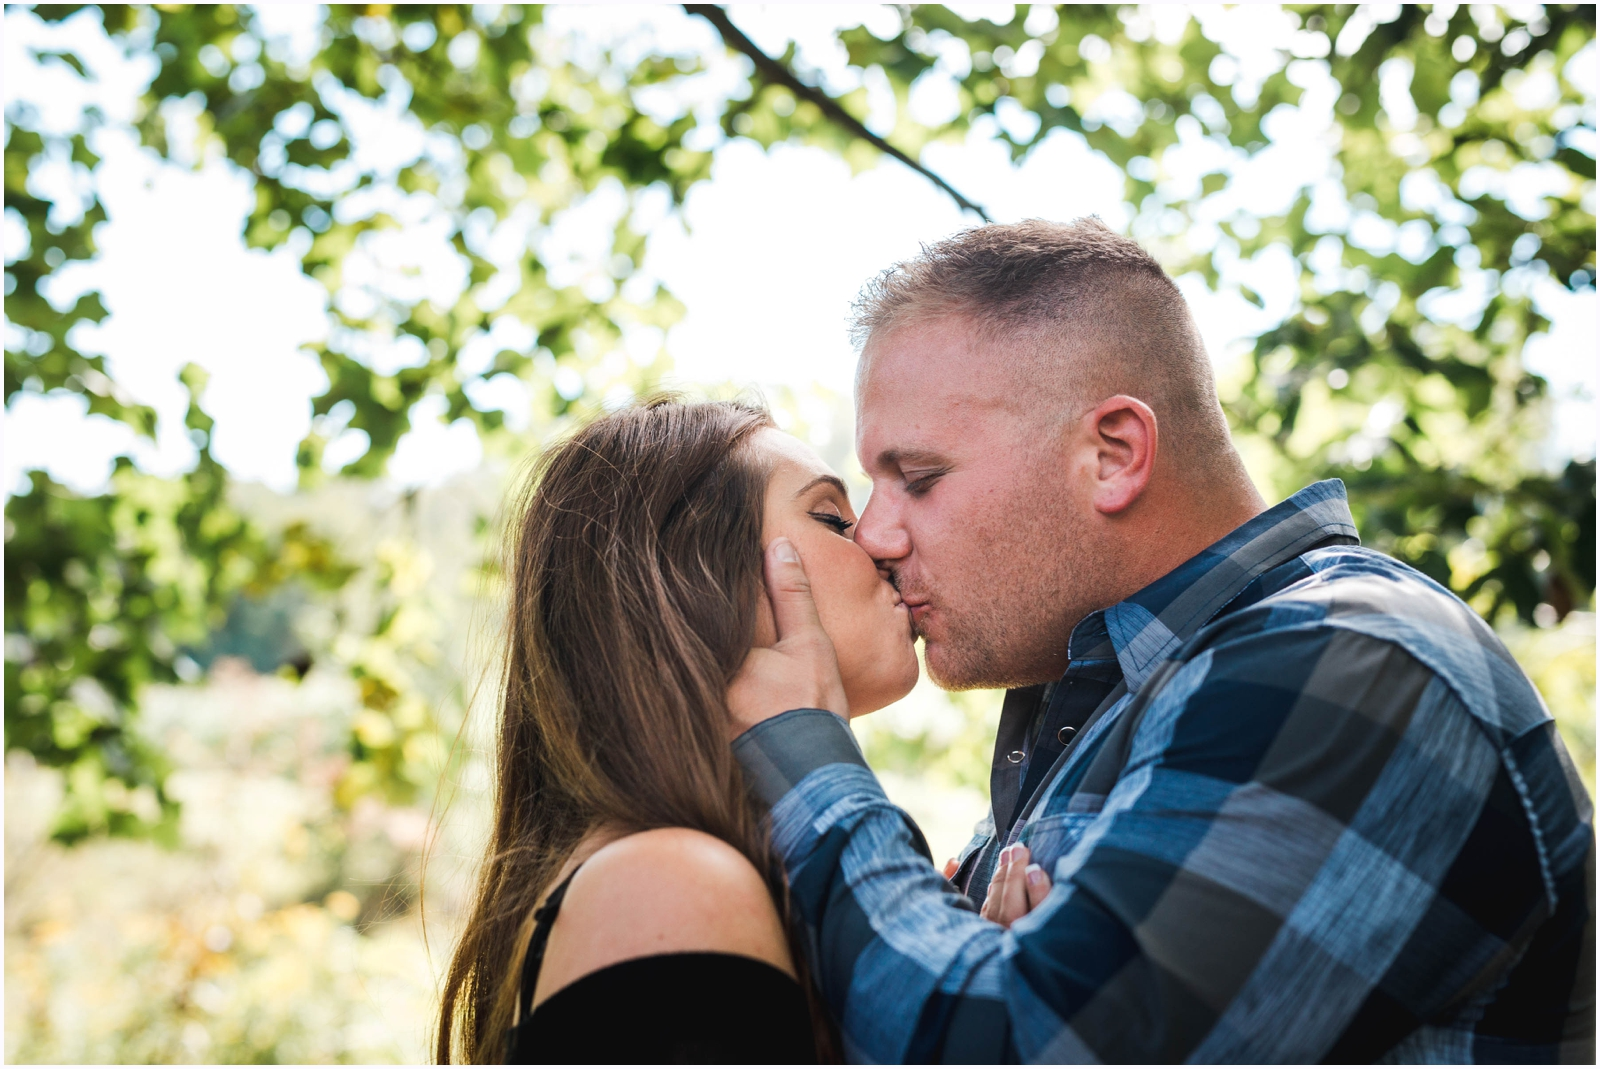 jamie_leonard_photography_proposal_engagement_portrait_mount_pleasant_youngwood_greensburg_winery.jpg